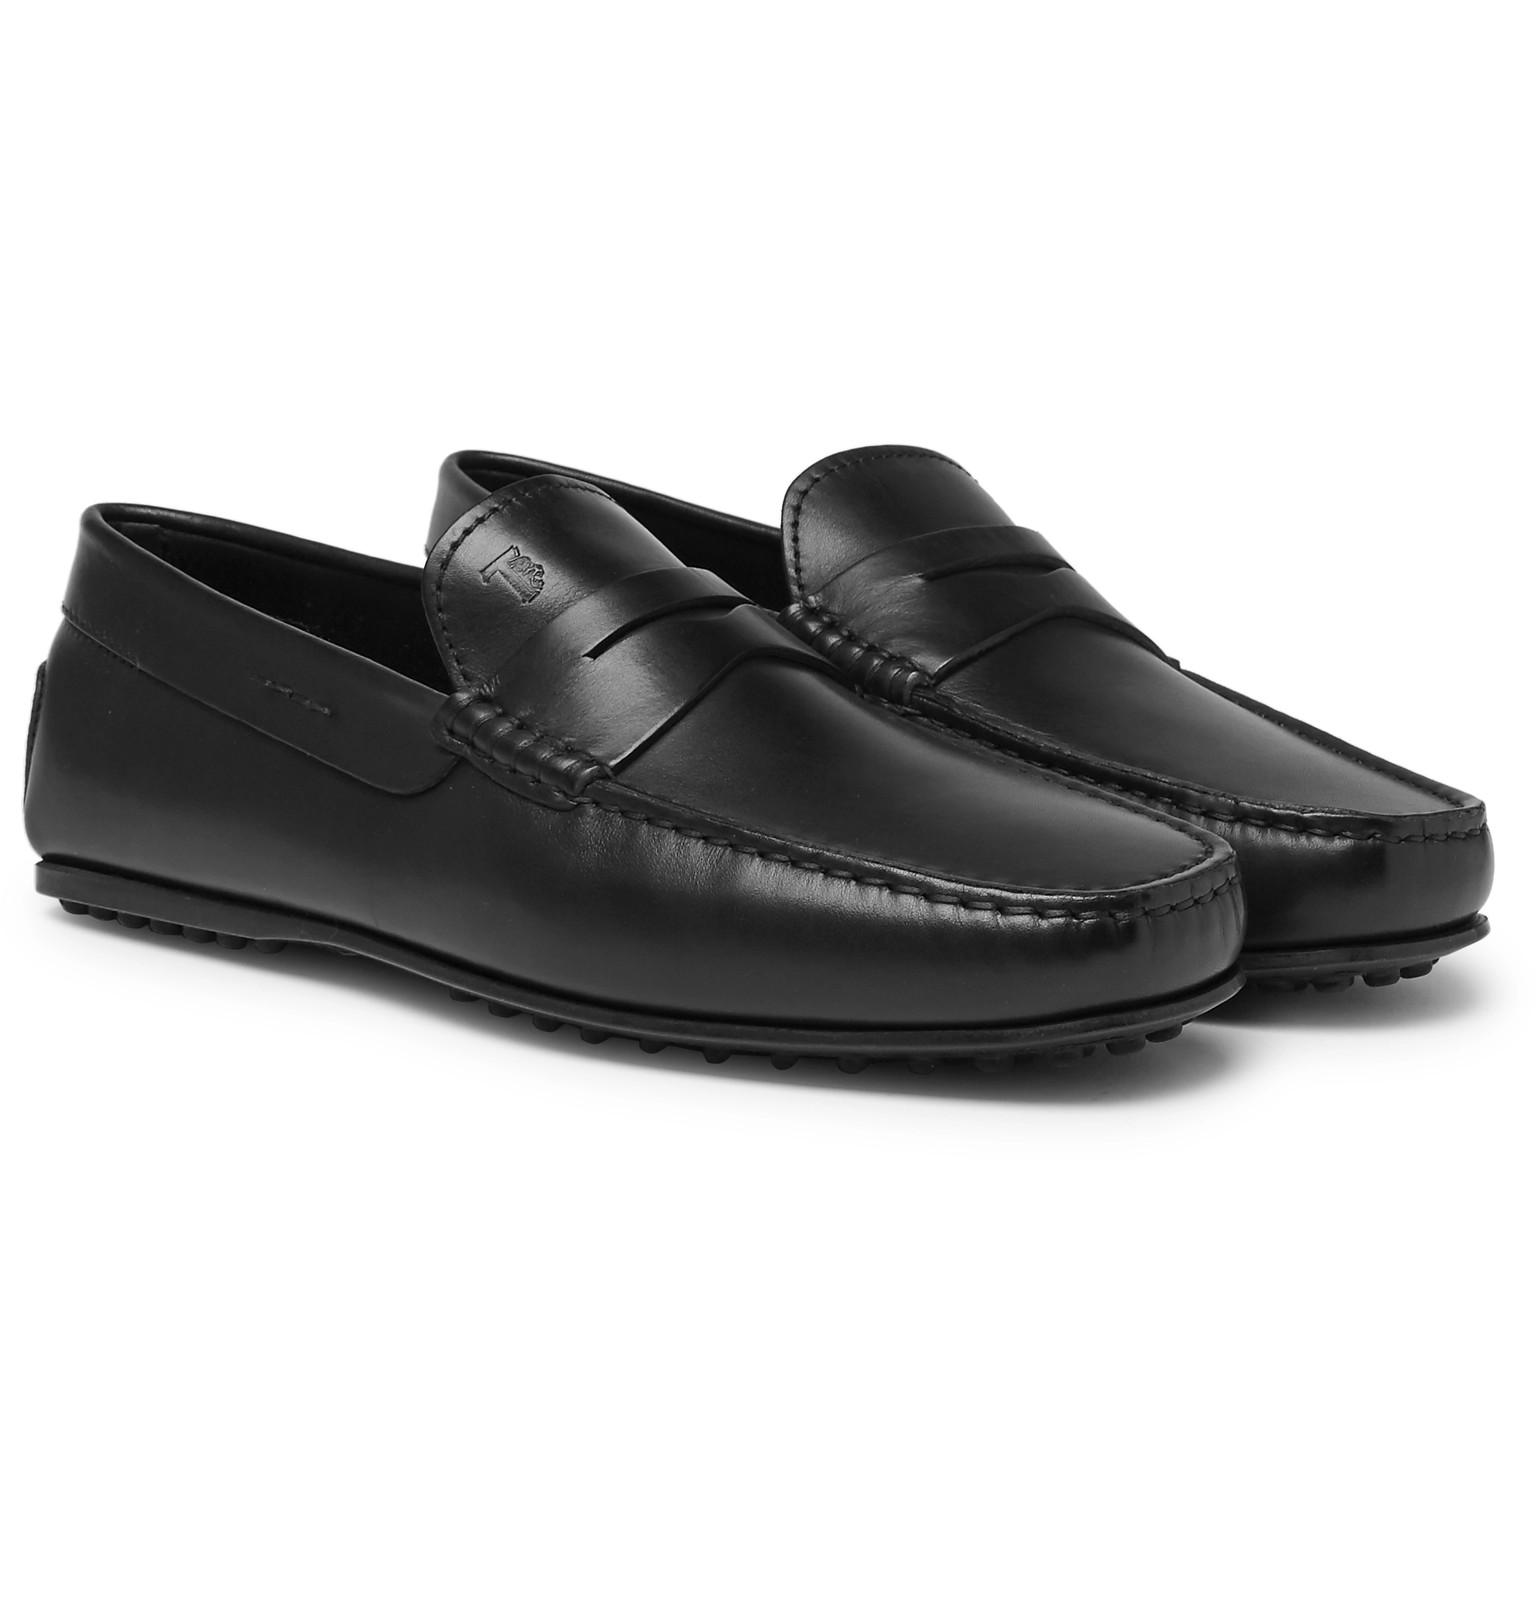 a9135fdcc52 Tod s City Gommino Leather Penny Loafers in Black for Men - Lyst